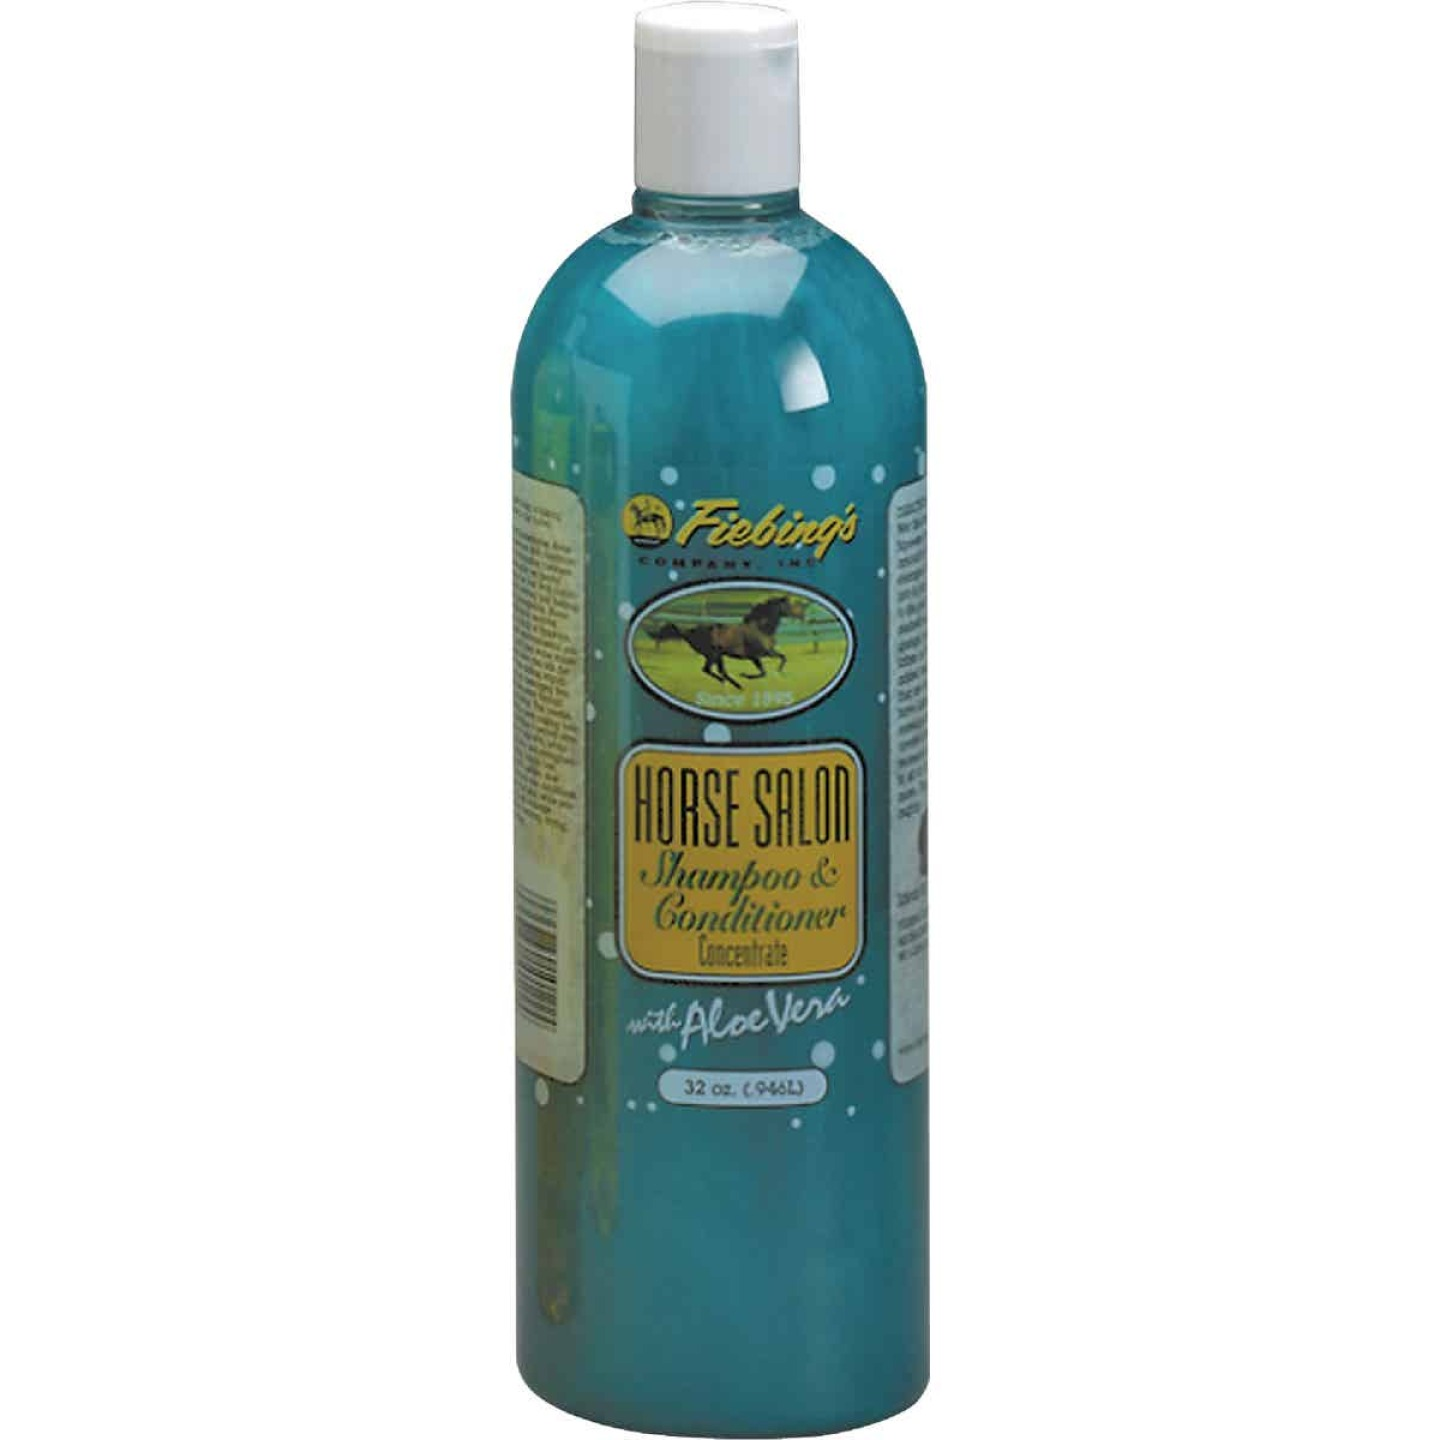 Fiebing's 32 Oz. Squeeze Bottle Horse Salon Shampoo & Conditioner Image 1